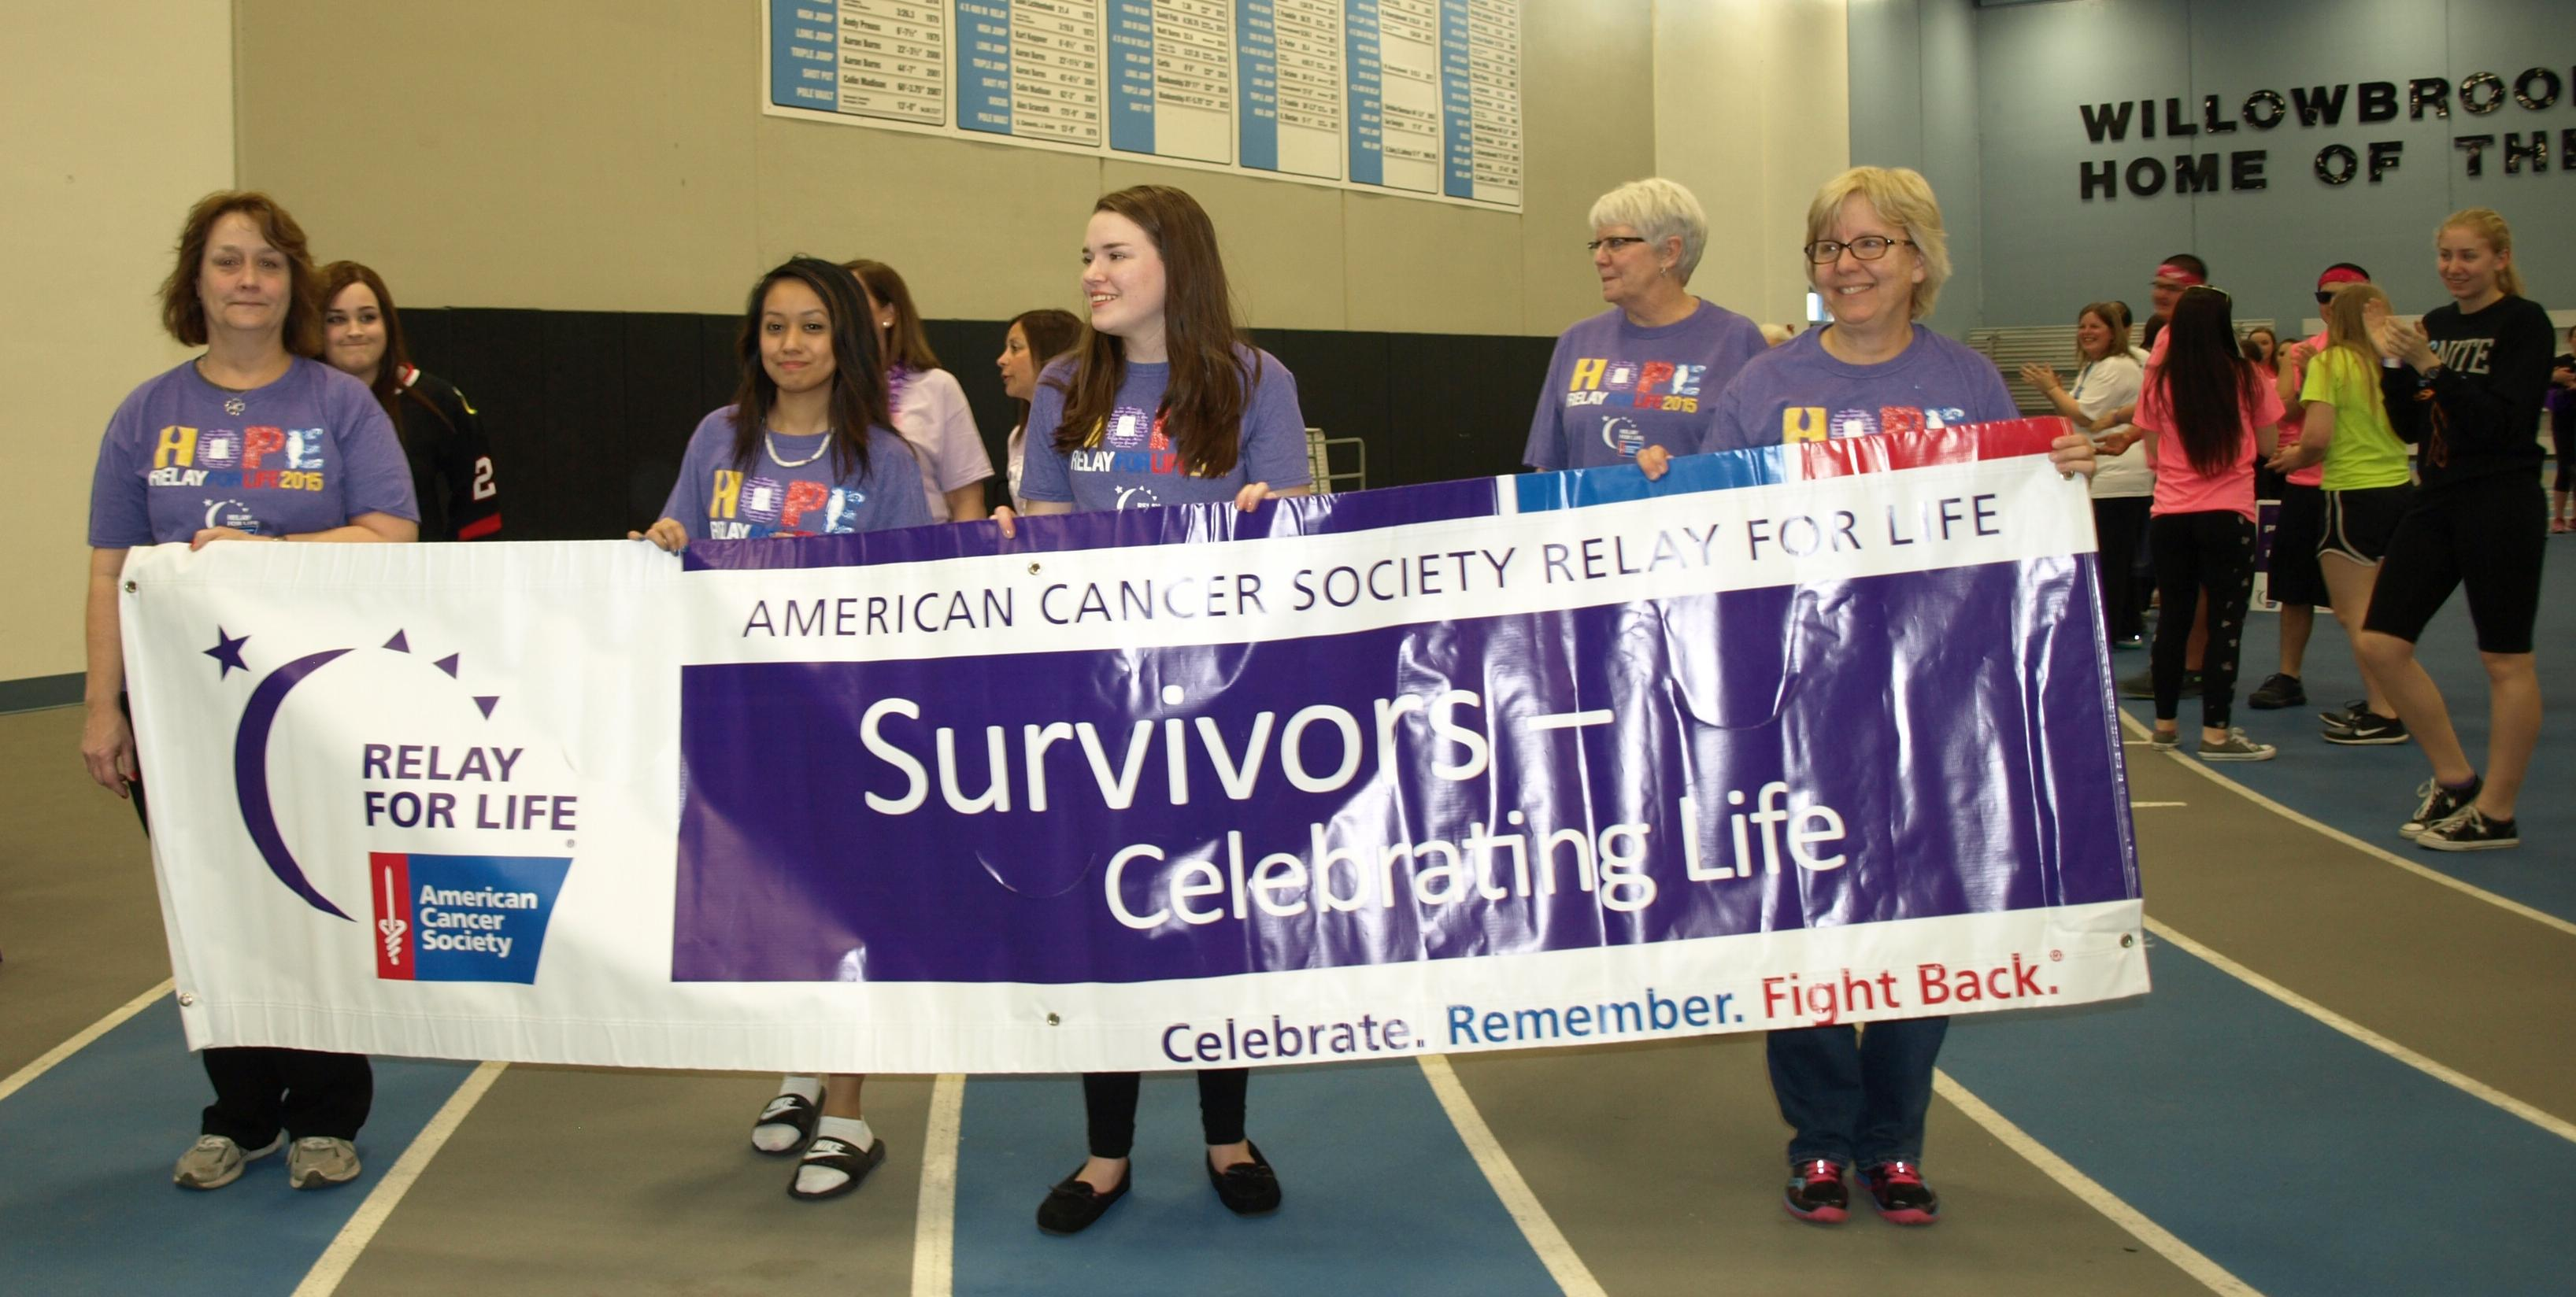 Willowbrook raises more than $60,000 for the American Cancer Society